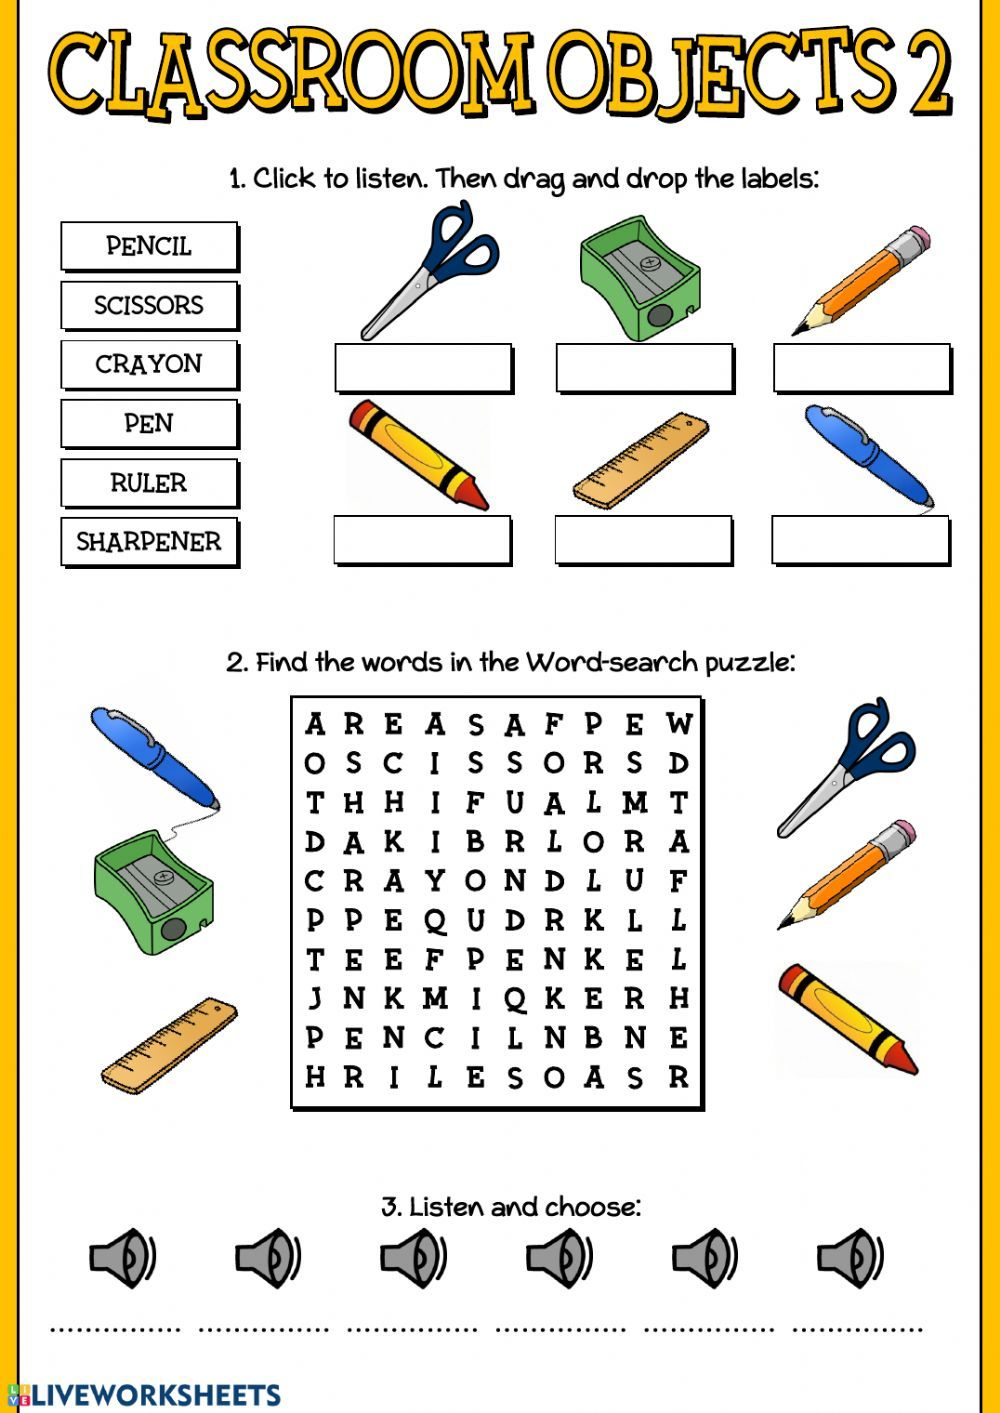 hight resolution of Classroom objects 2 - Interactive worksheet   English language learning  activities